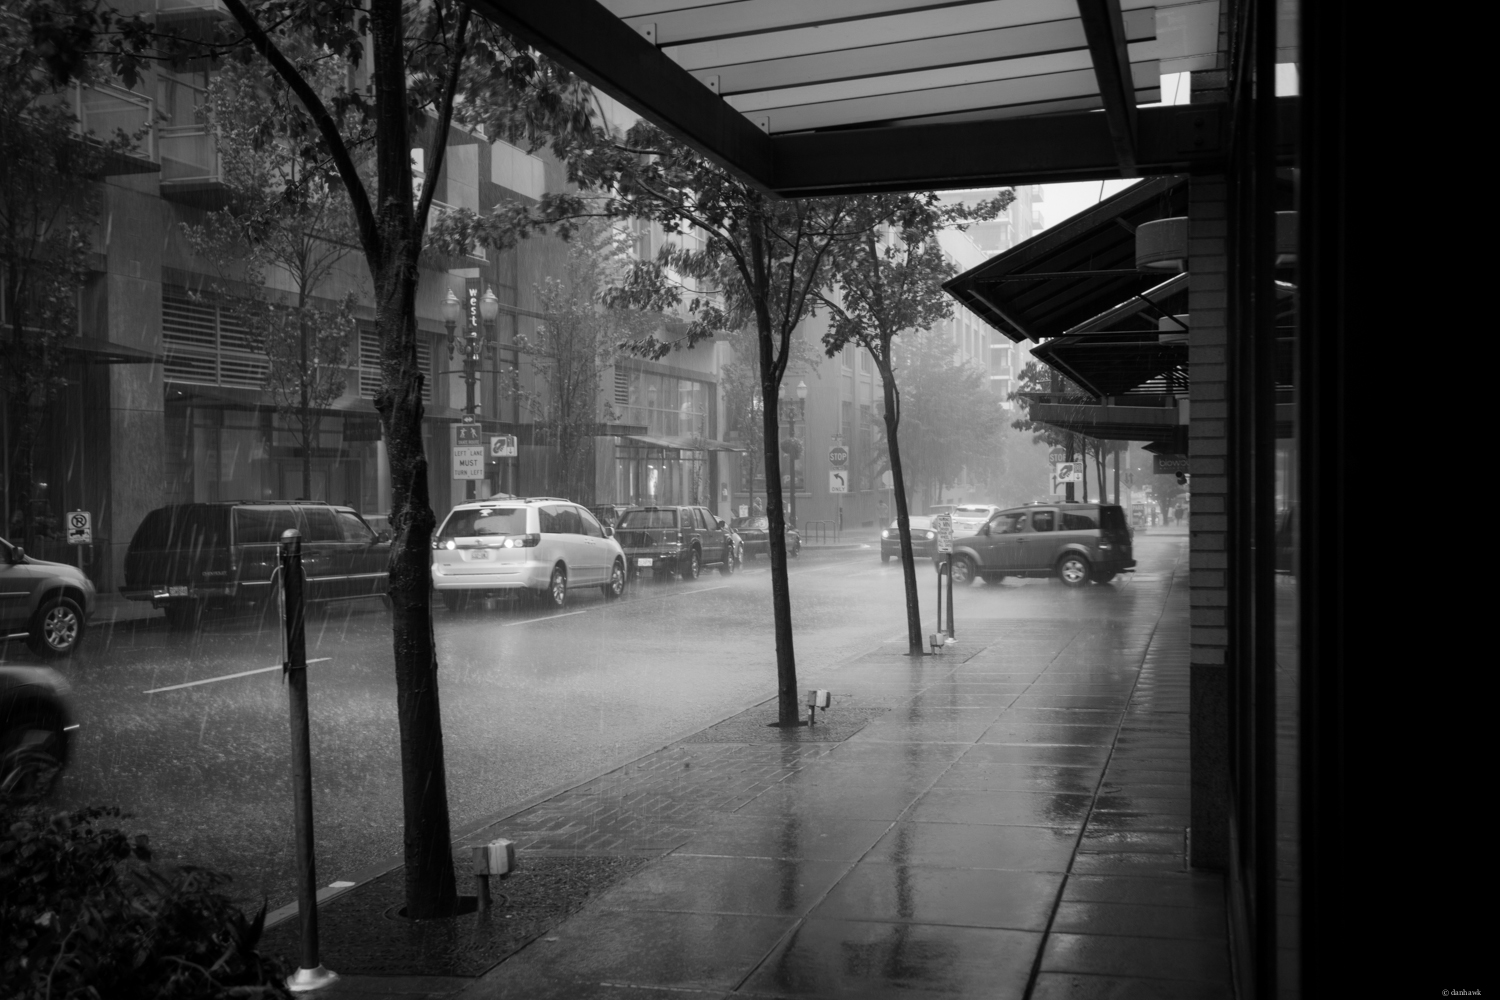 Portland Rain is Back | 365 Project | September 28th, 2013 | 24mm, f/2, ISO 100, 1/40